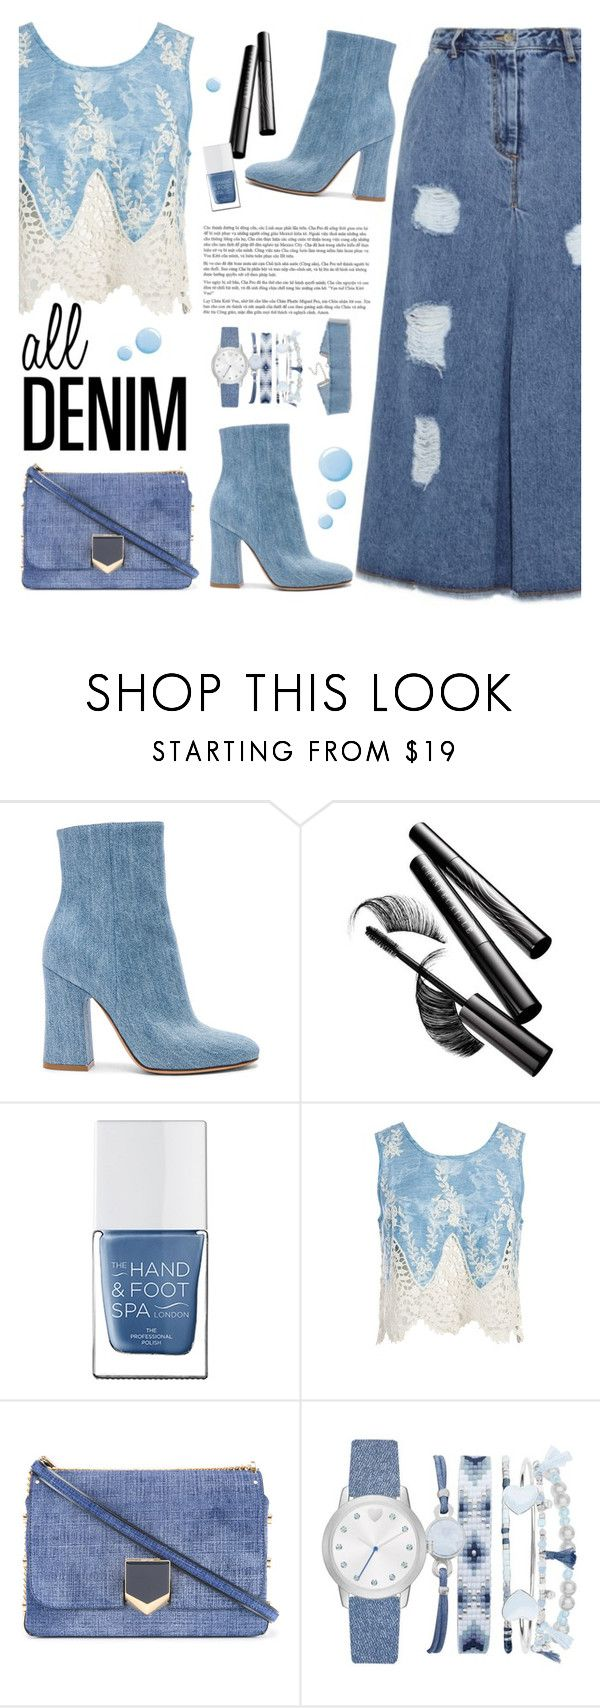 """""""All Denim, Head to Toe"""" by tamara-p ❤ liked on Polyvore featuring Gianvito Rossi, Chantecaille, The Hand & Foot Spa, Sans Souci, Jimmy Choo, A.X.N.Y., Topshop and alldenim"""